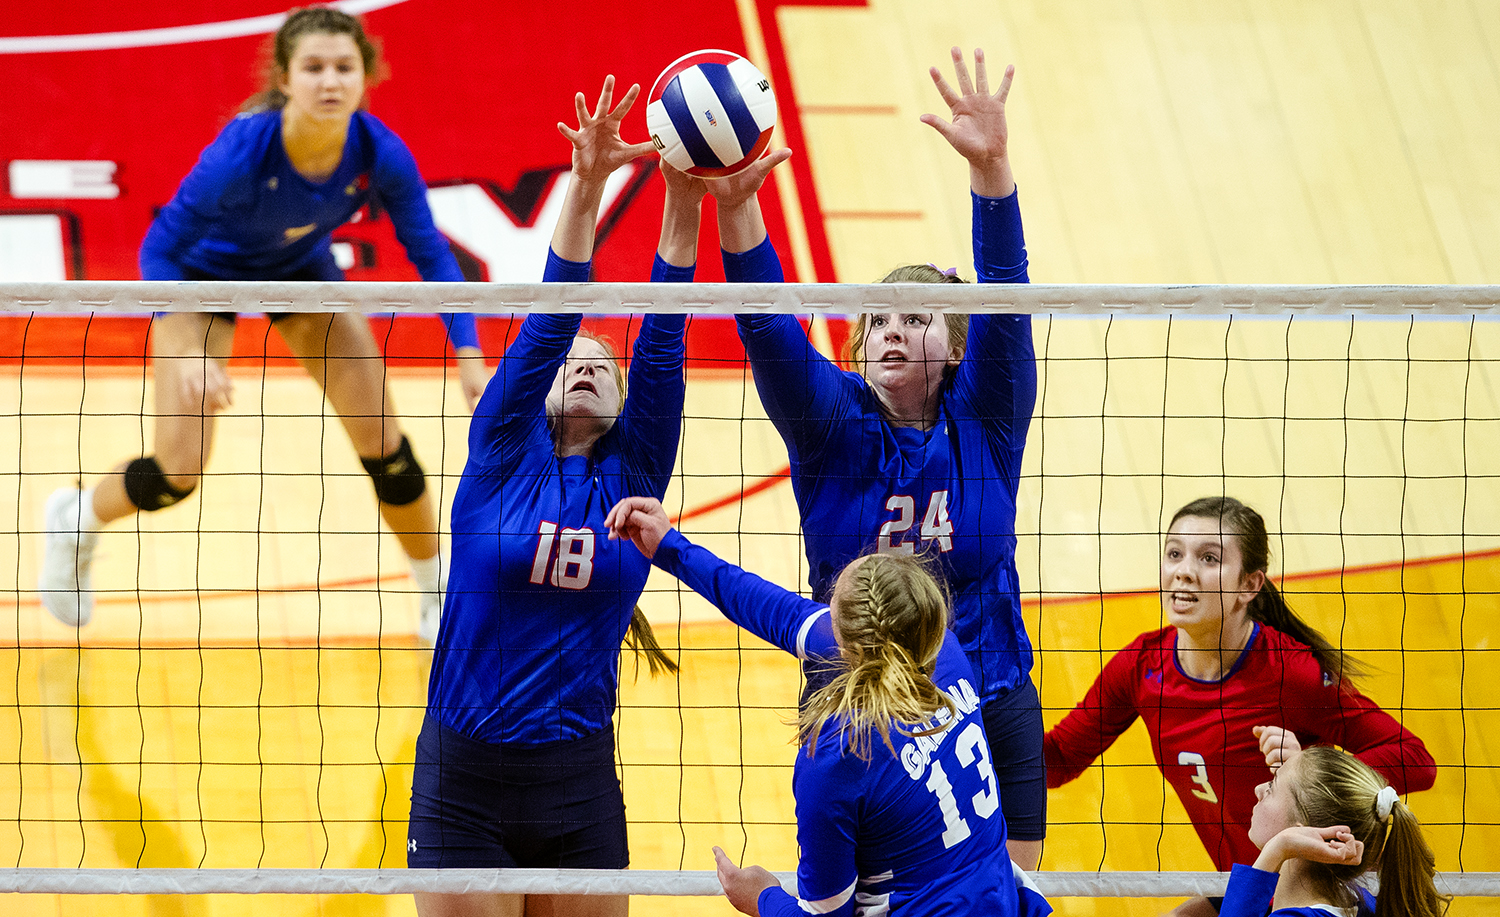 Pleasant Plains' Anna Kanllakan, left, and McKenzie Smith block an attempted Galena spike during the IHSA Class 2A Volleyball championship at Redbird Arena in Normal Saturday, Nov. 10, 2018. [Ted Schurter/The State Journal-Register]